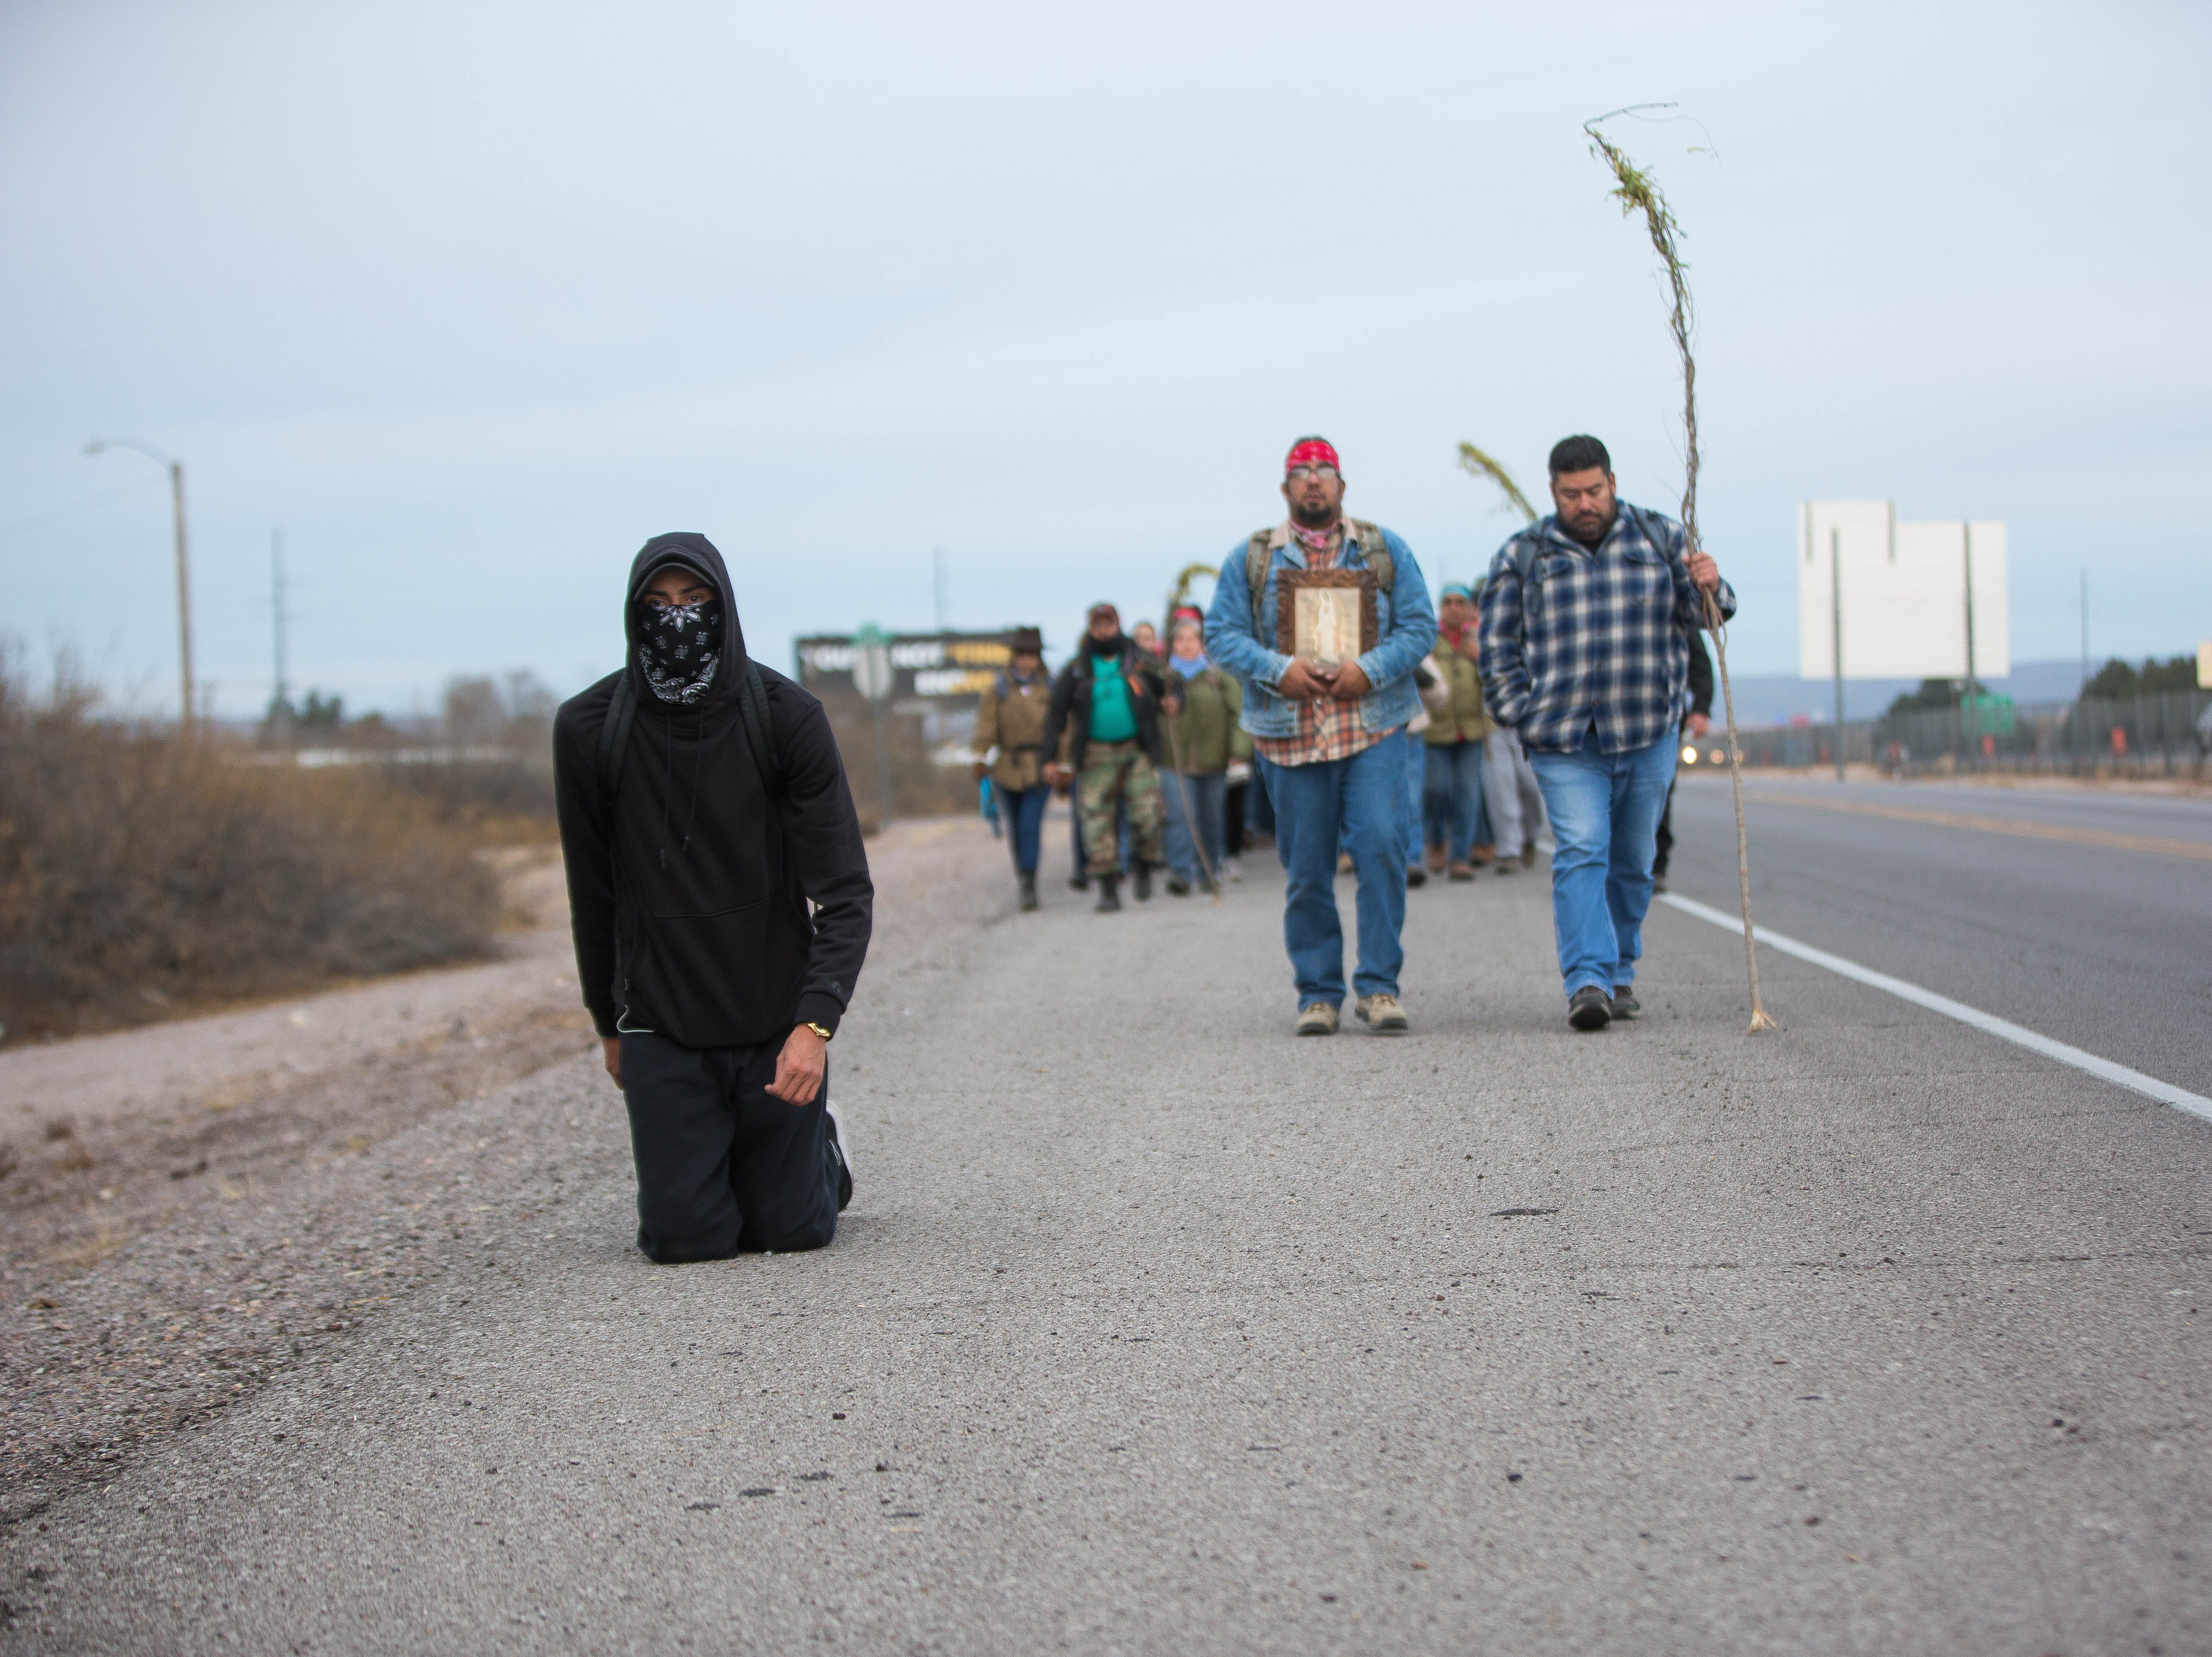 During the second day of the Fiesta of Our Lady of Guadalupe, a pilgrim makes the journey from Tortugas Pueblo to Tortugas Mountain on his knees as penance Tuesday, Dec. 11, 2018. The man did not identify himself to the Sun-News.